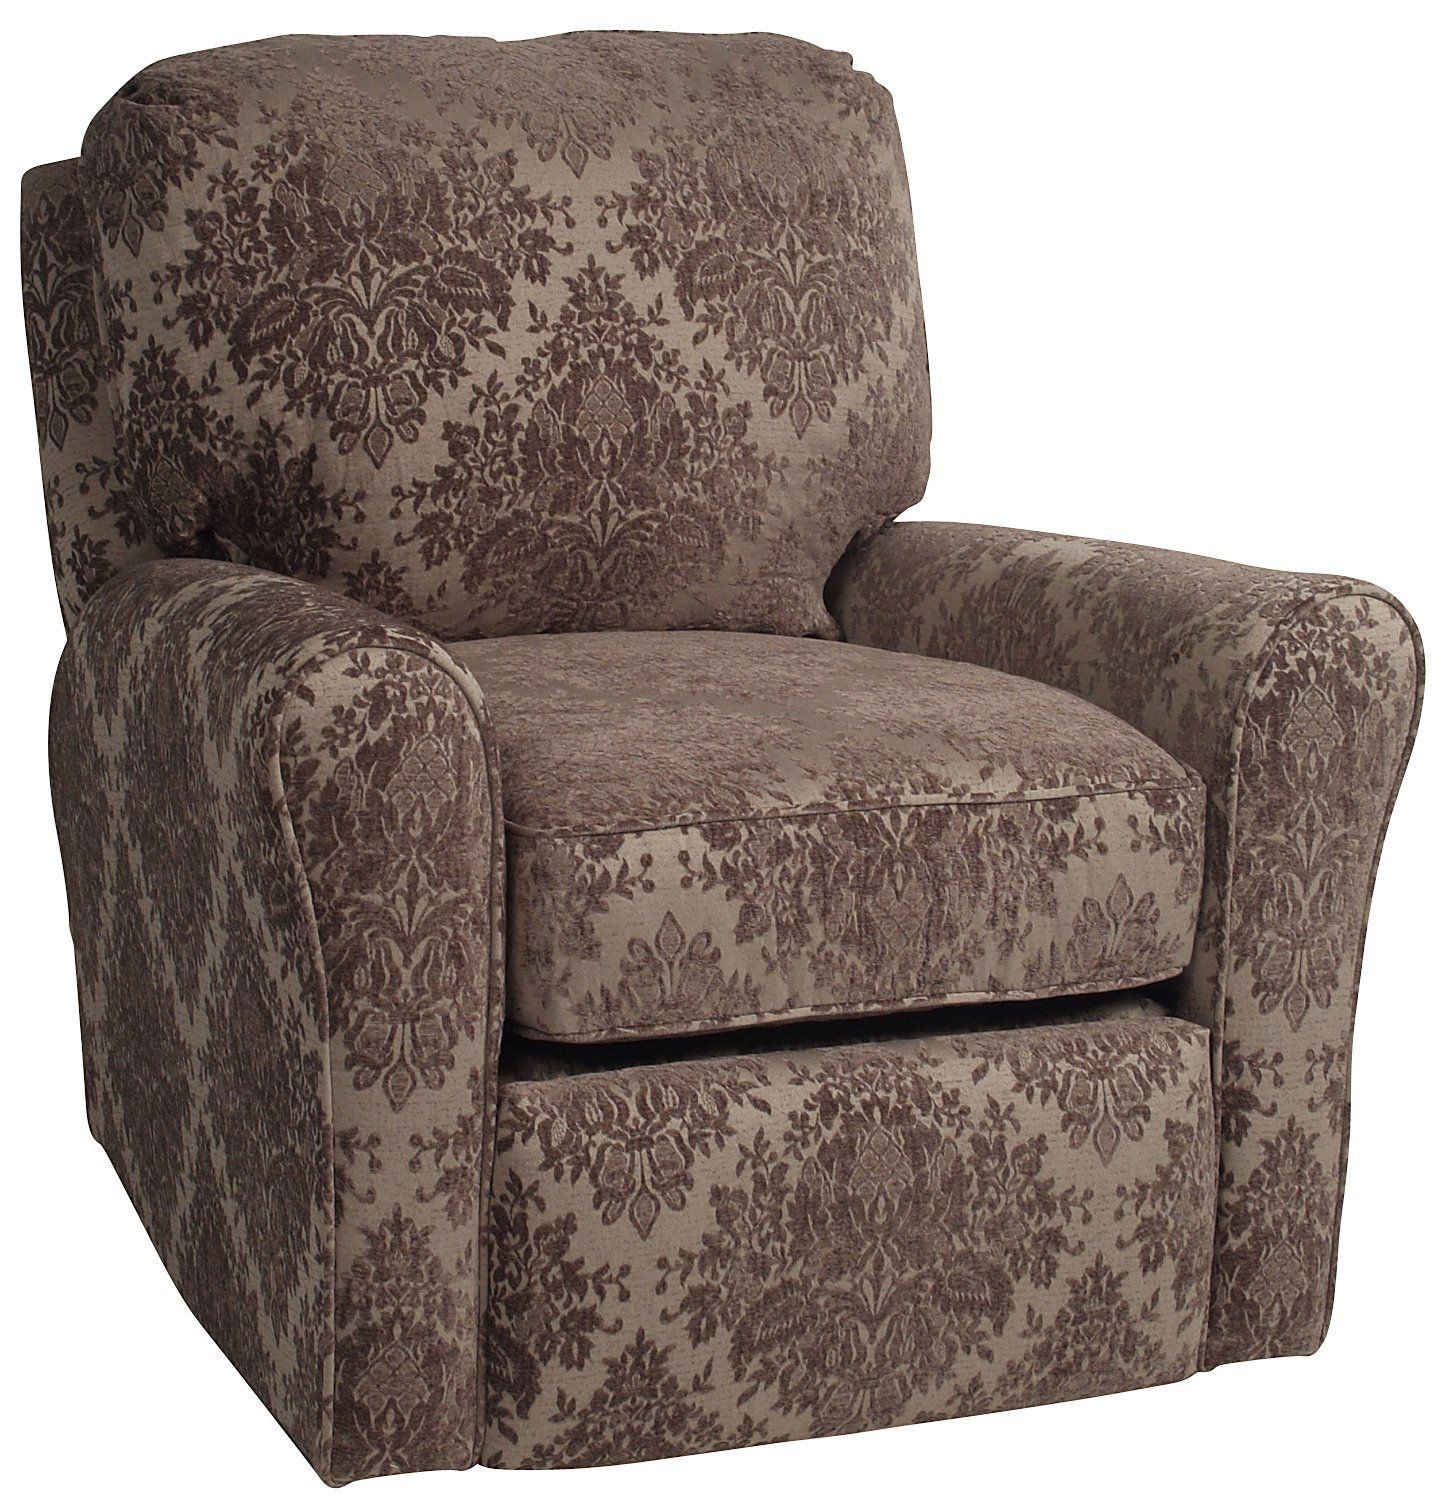 Little Castle Cottage Recliner   Bliss Pewter   Best Price  #DiaperscomNursery